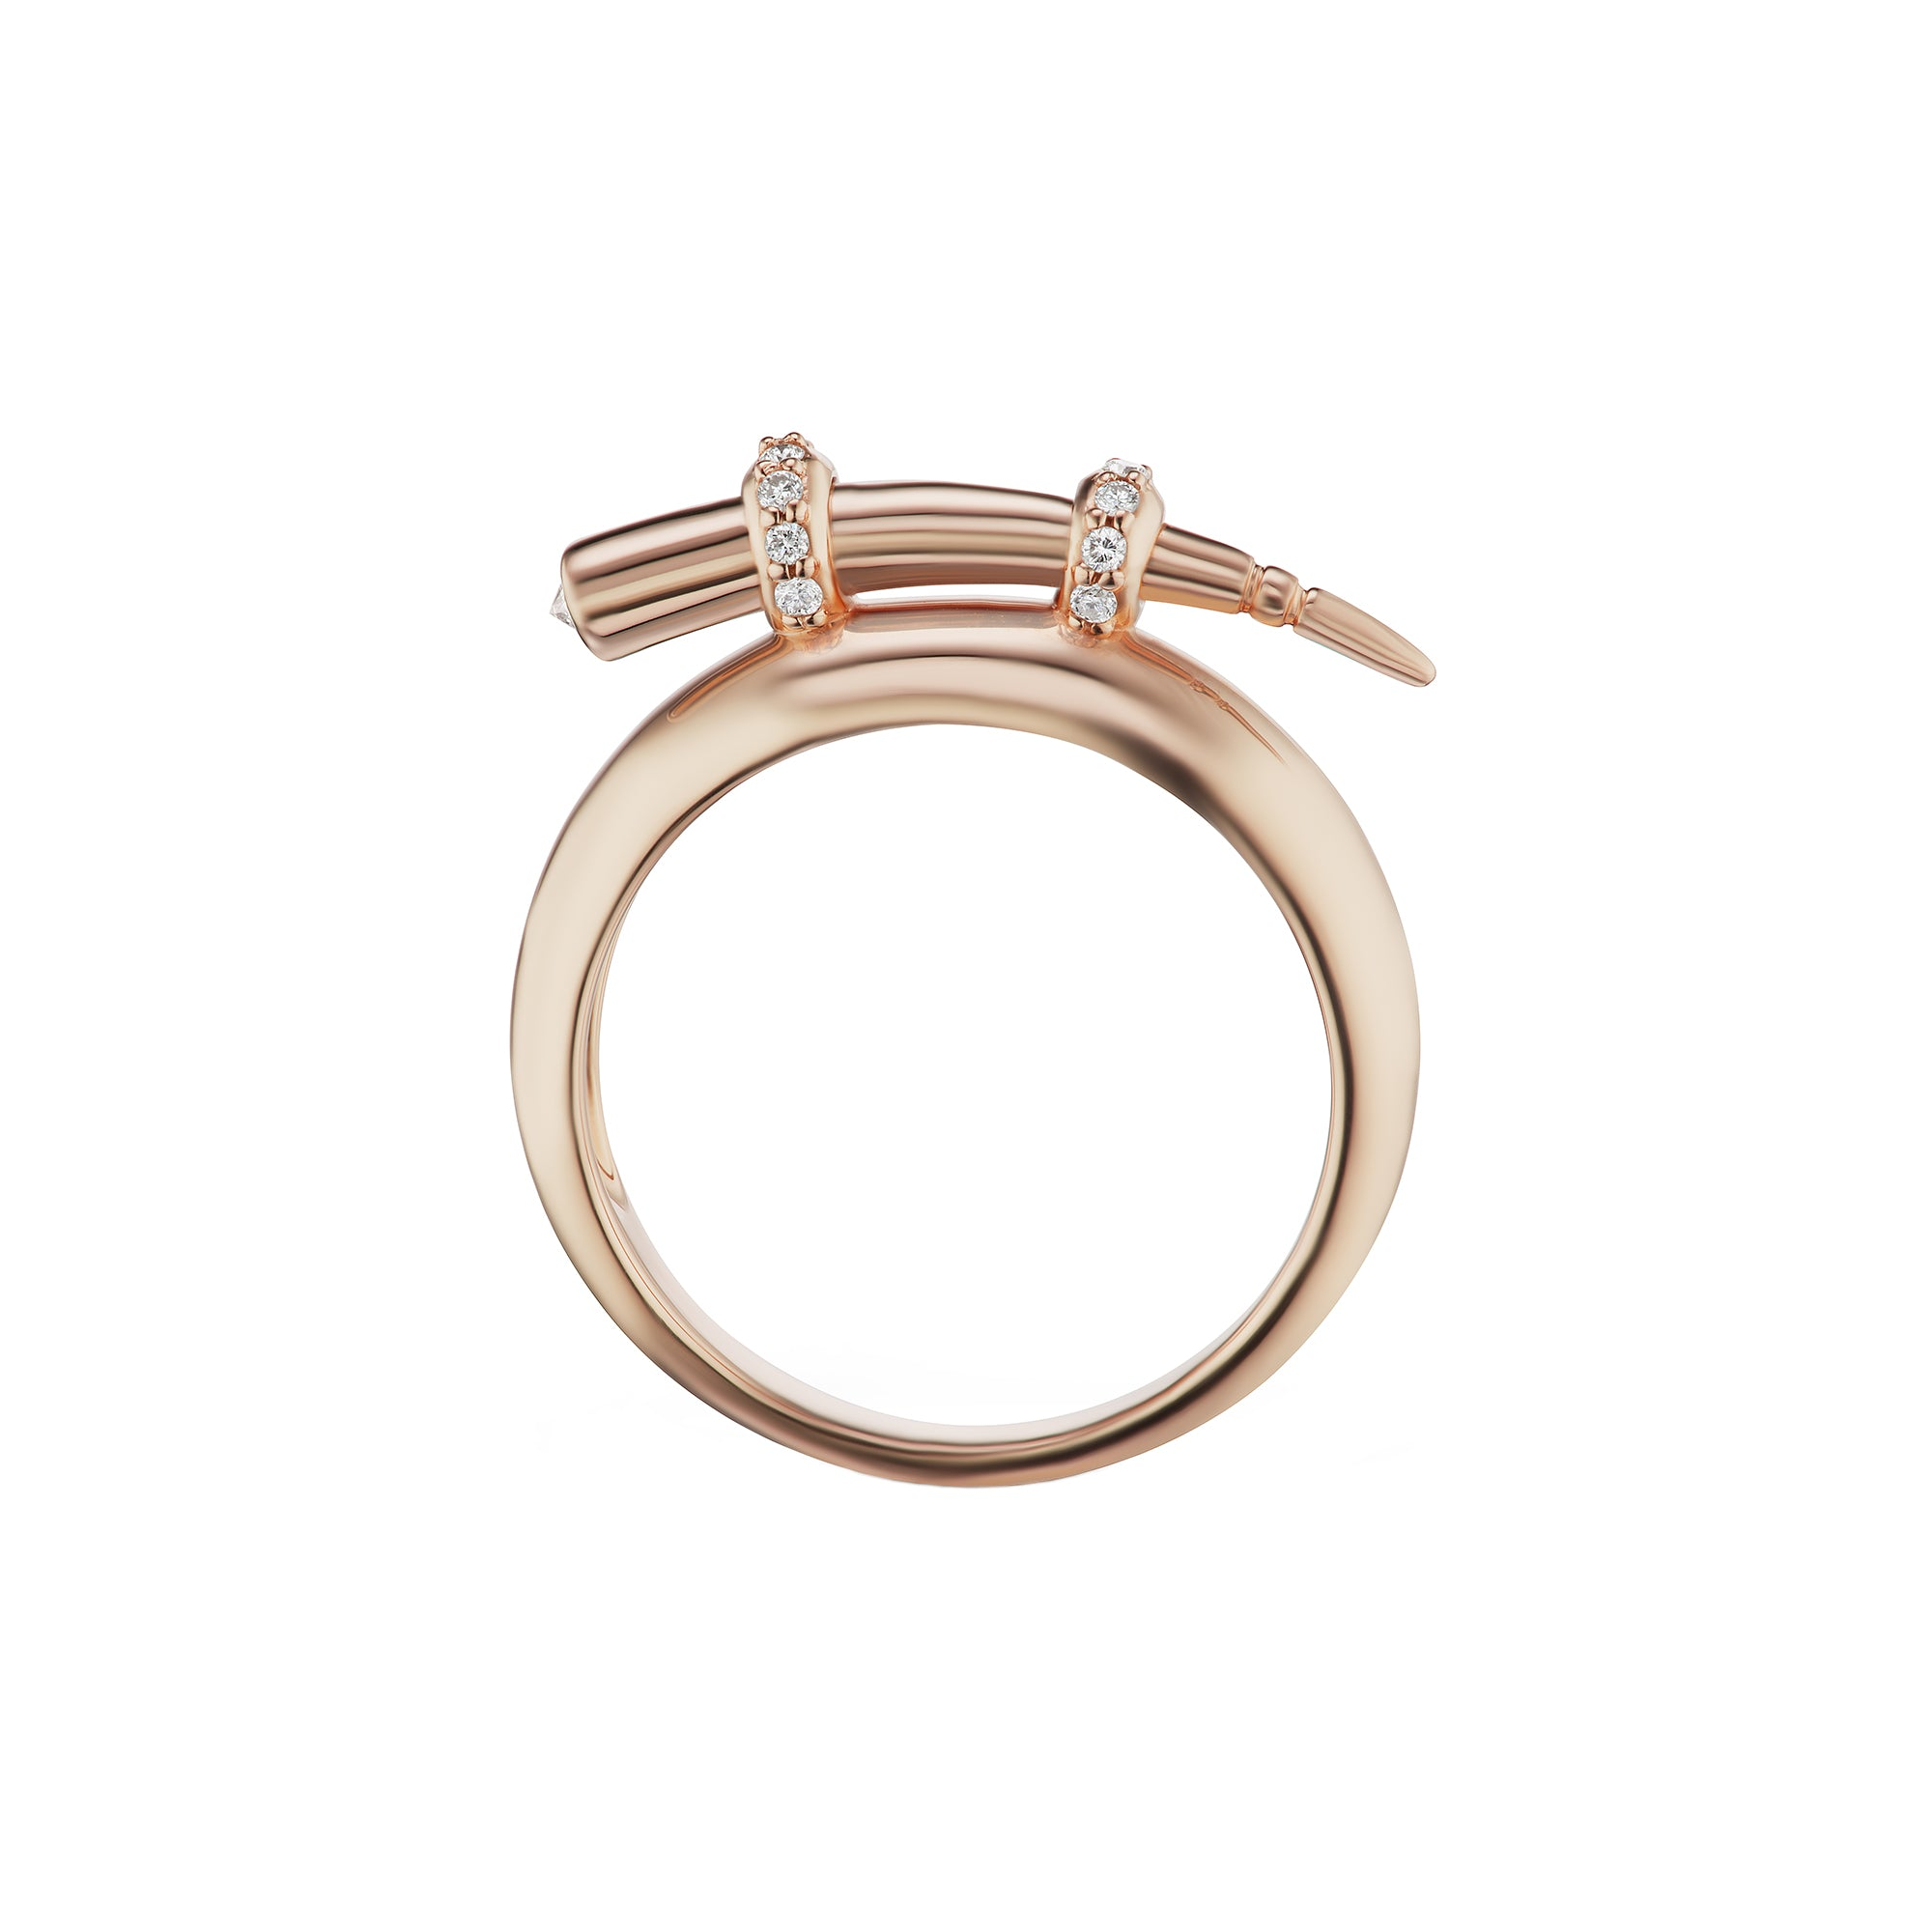 Hanno Tusk Ring by Altruist for Broken English Jewelry